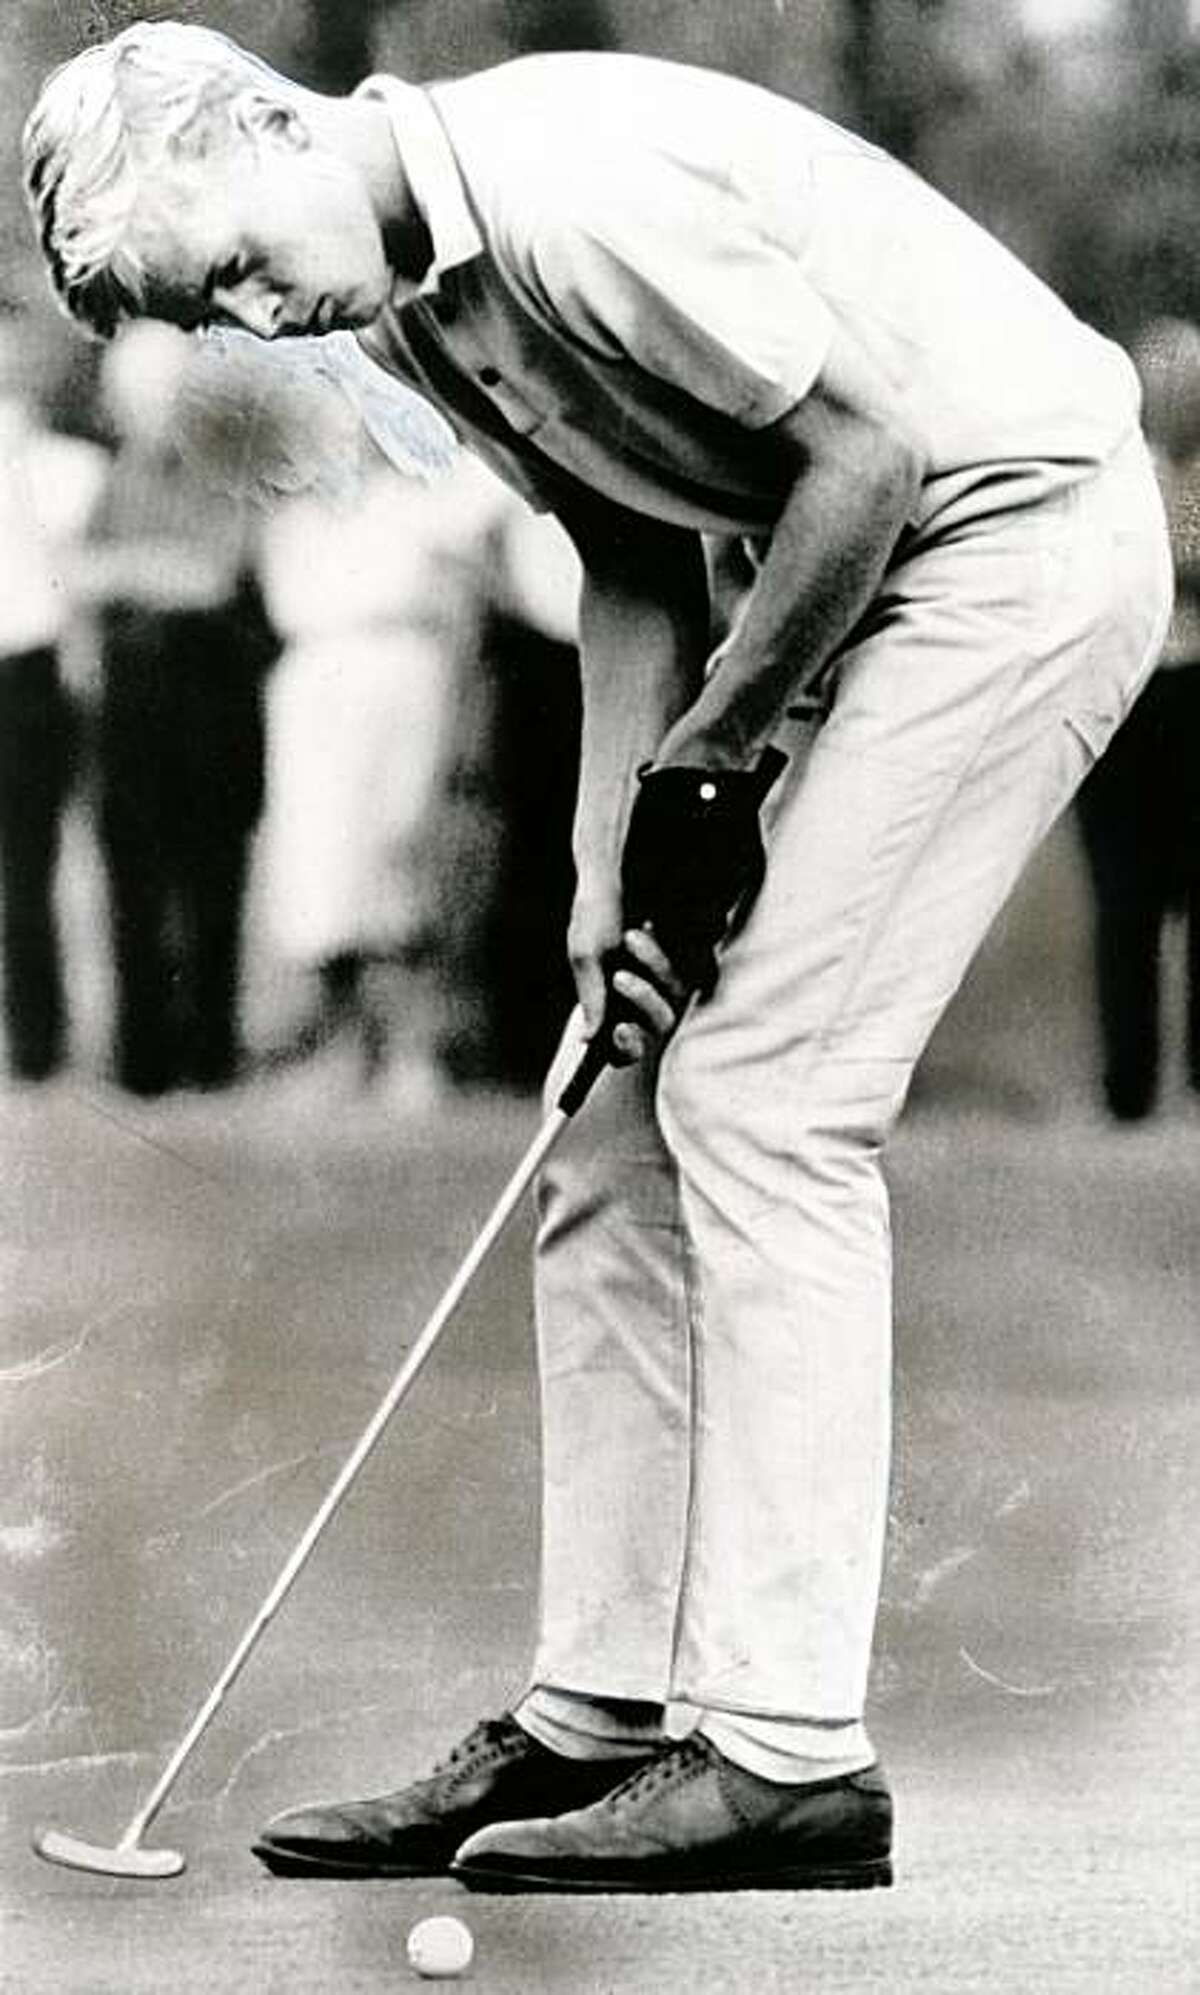 John Miller of San Francisco, playing for the Olympic Club, sinks a short put on the 18th hole of the Eugene Country Club in the qualifying rounds of the 17th Junior Amateur Championship of the United States Golf Association on July 29, 1964.